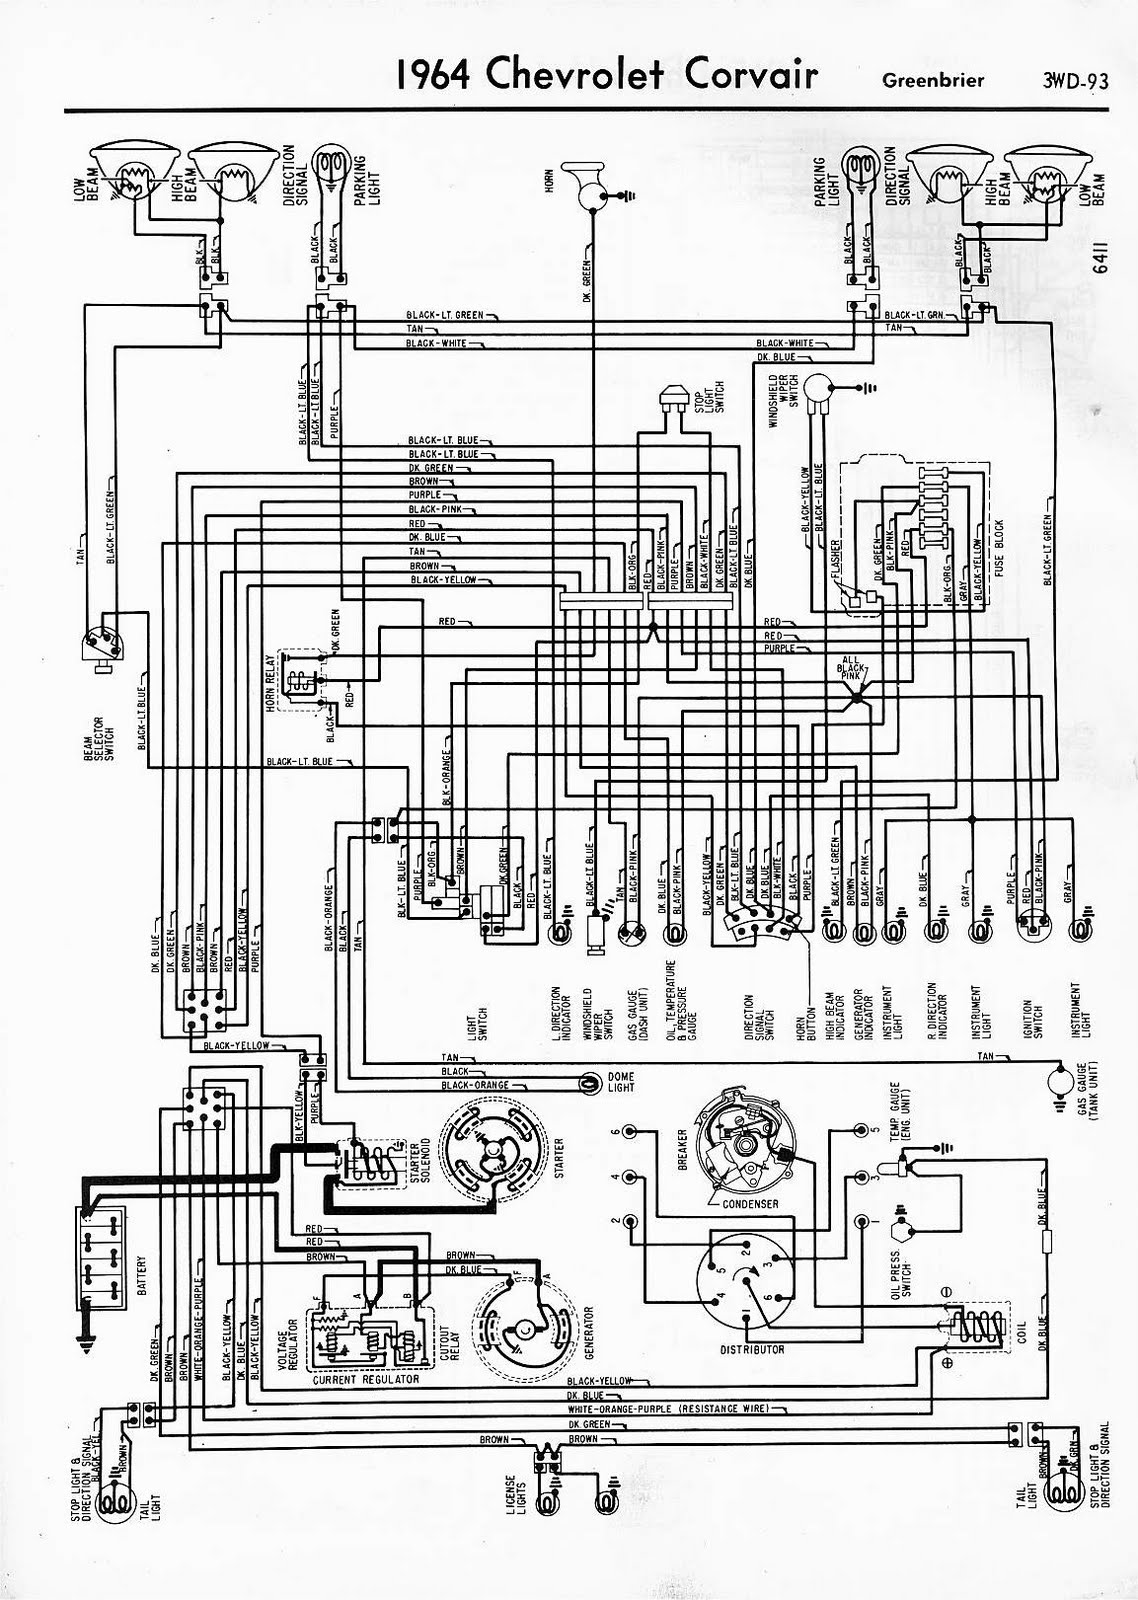 1966 corvair engine diagram